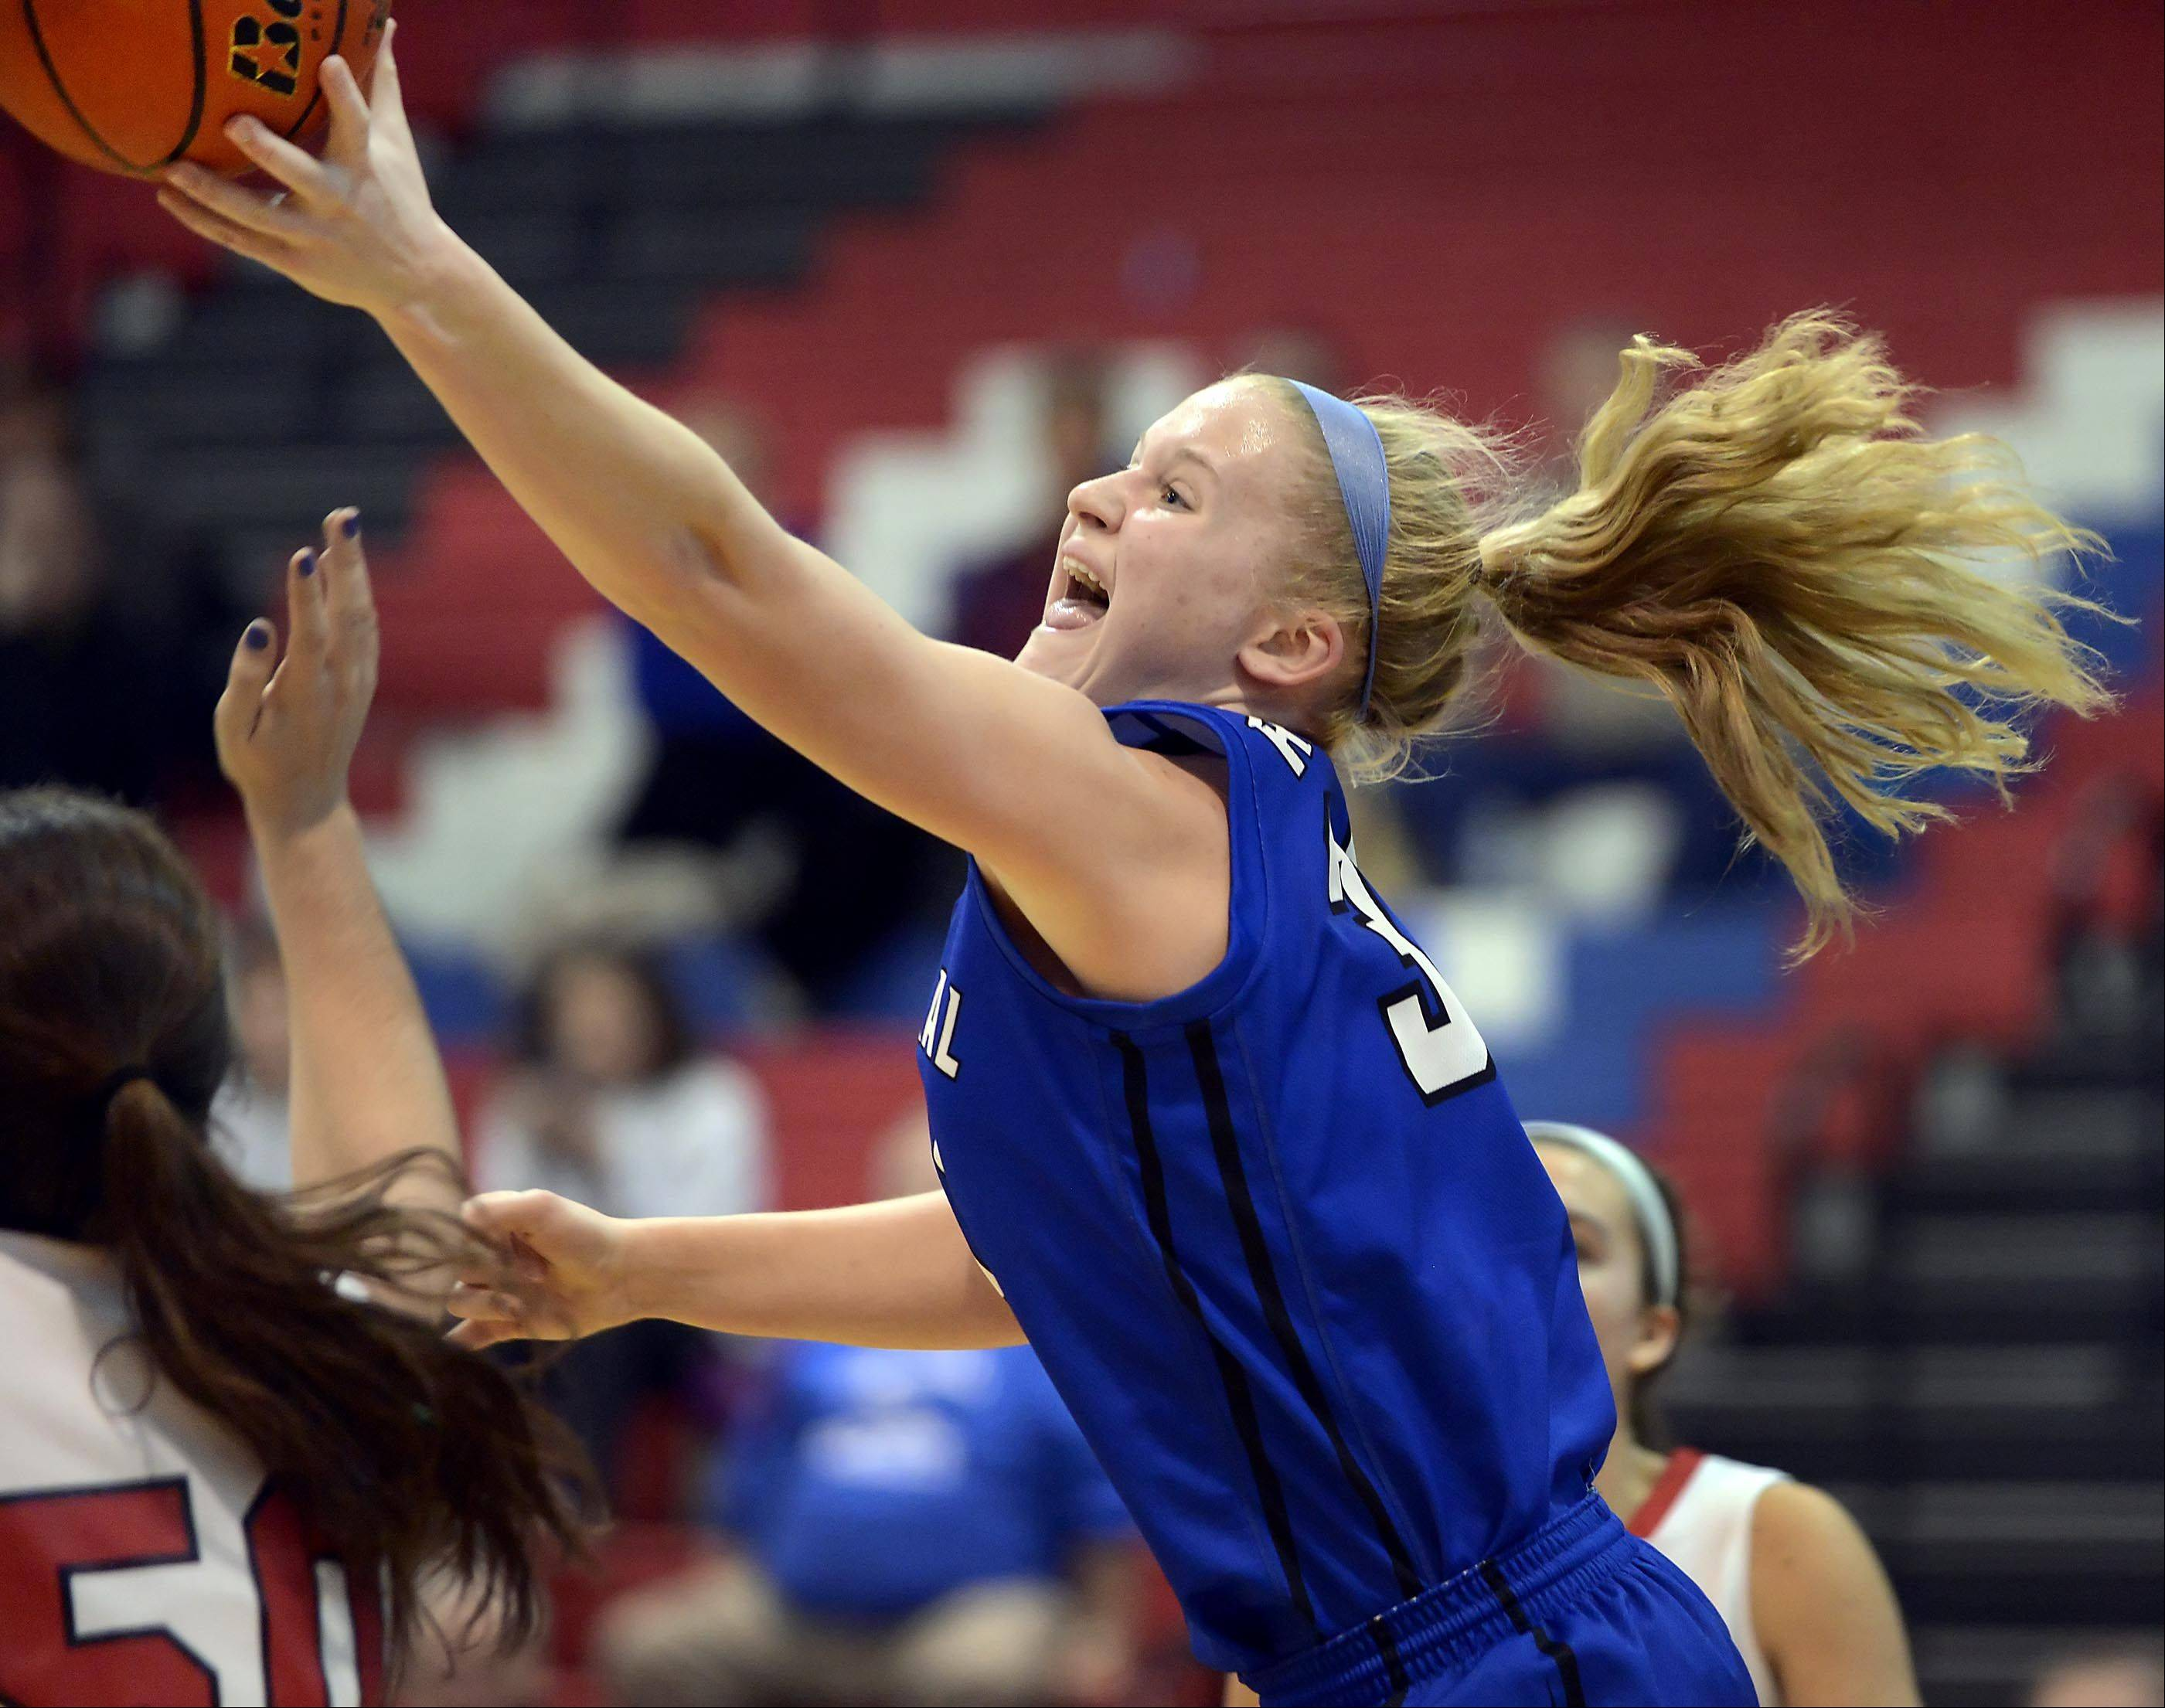 Burlington Central�s Sam Pryor reaches for a rebound against Maine South Monday in the consolation championship of the 31st Annual Charger Classic Girls Basketball Tournament at Dundee-Crown High School in Carpentersville.